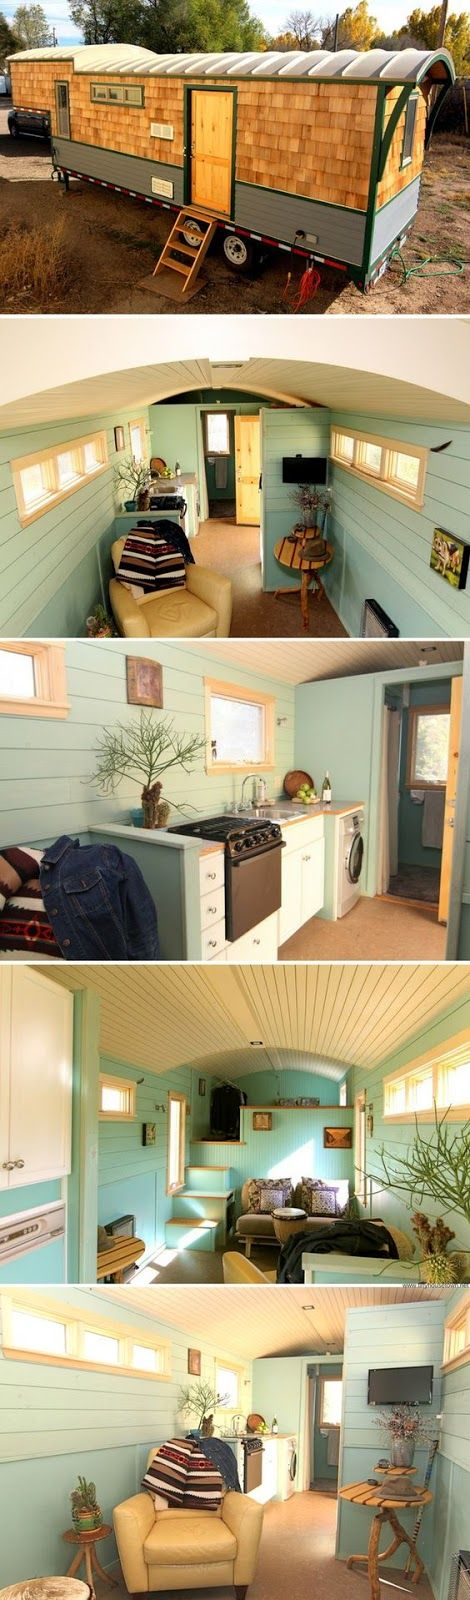 mytinyhousedirectory: Fort Collins Tiny House ~ For Sale!